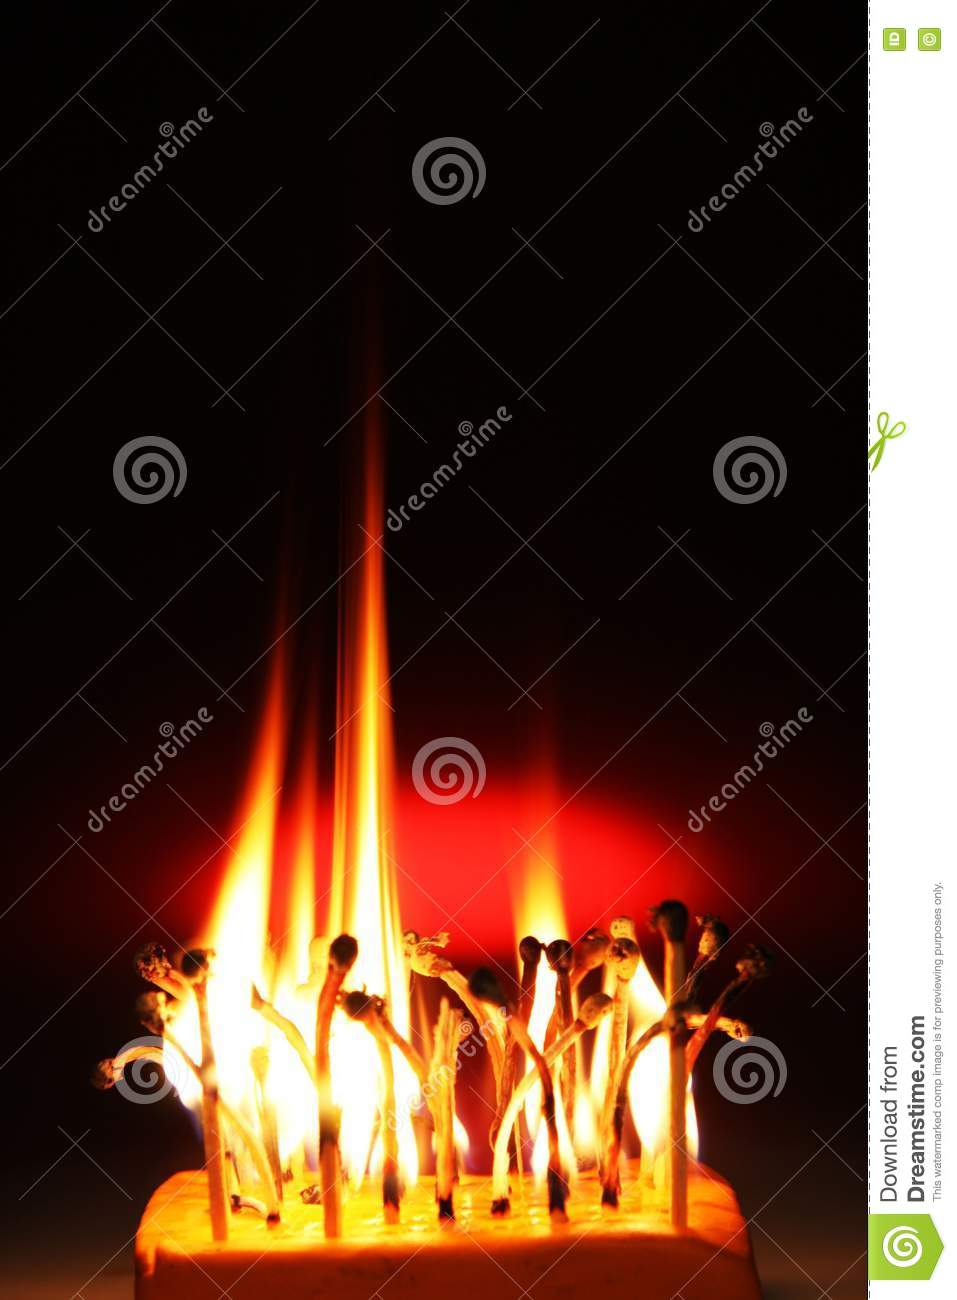 Fire matches